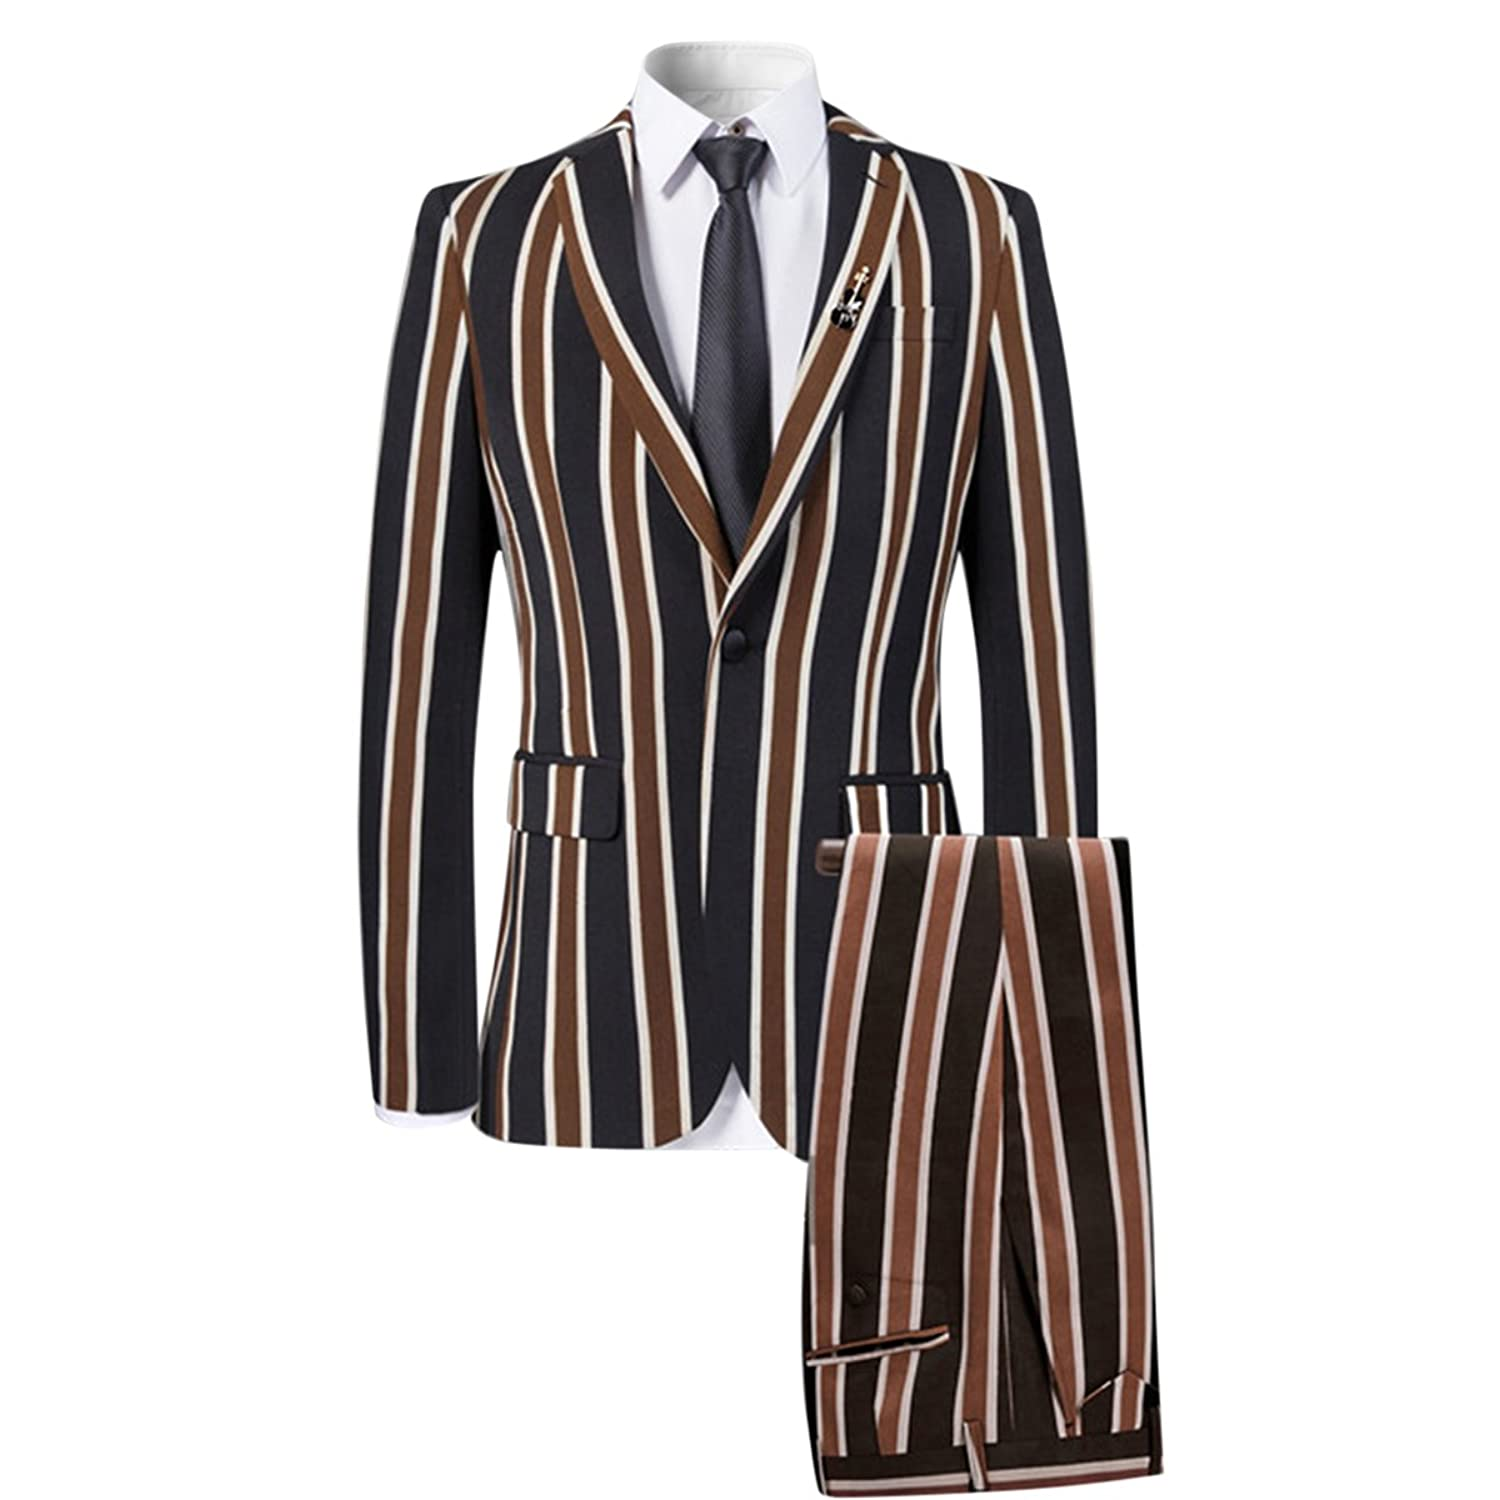 1920s Fashion for Men Colored Striped 3 Piece Suit Slim Fit Tuxedo Blazer Jacket Pants Vest Set $105.99 AT vintagedancer.com